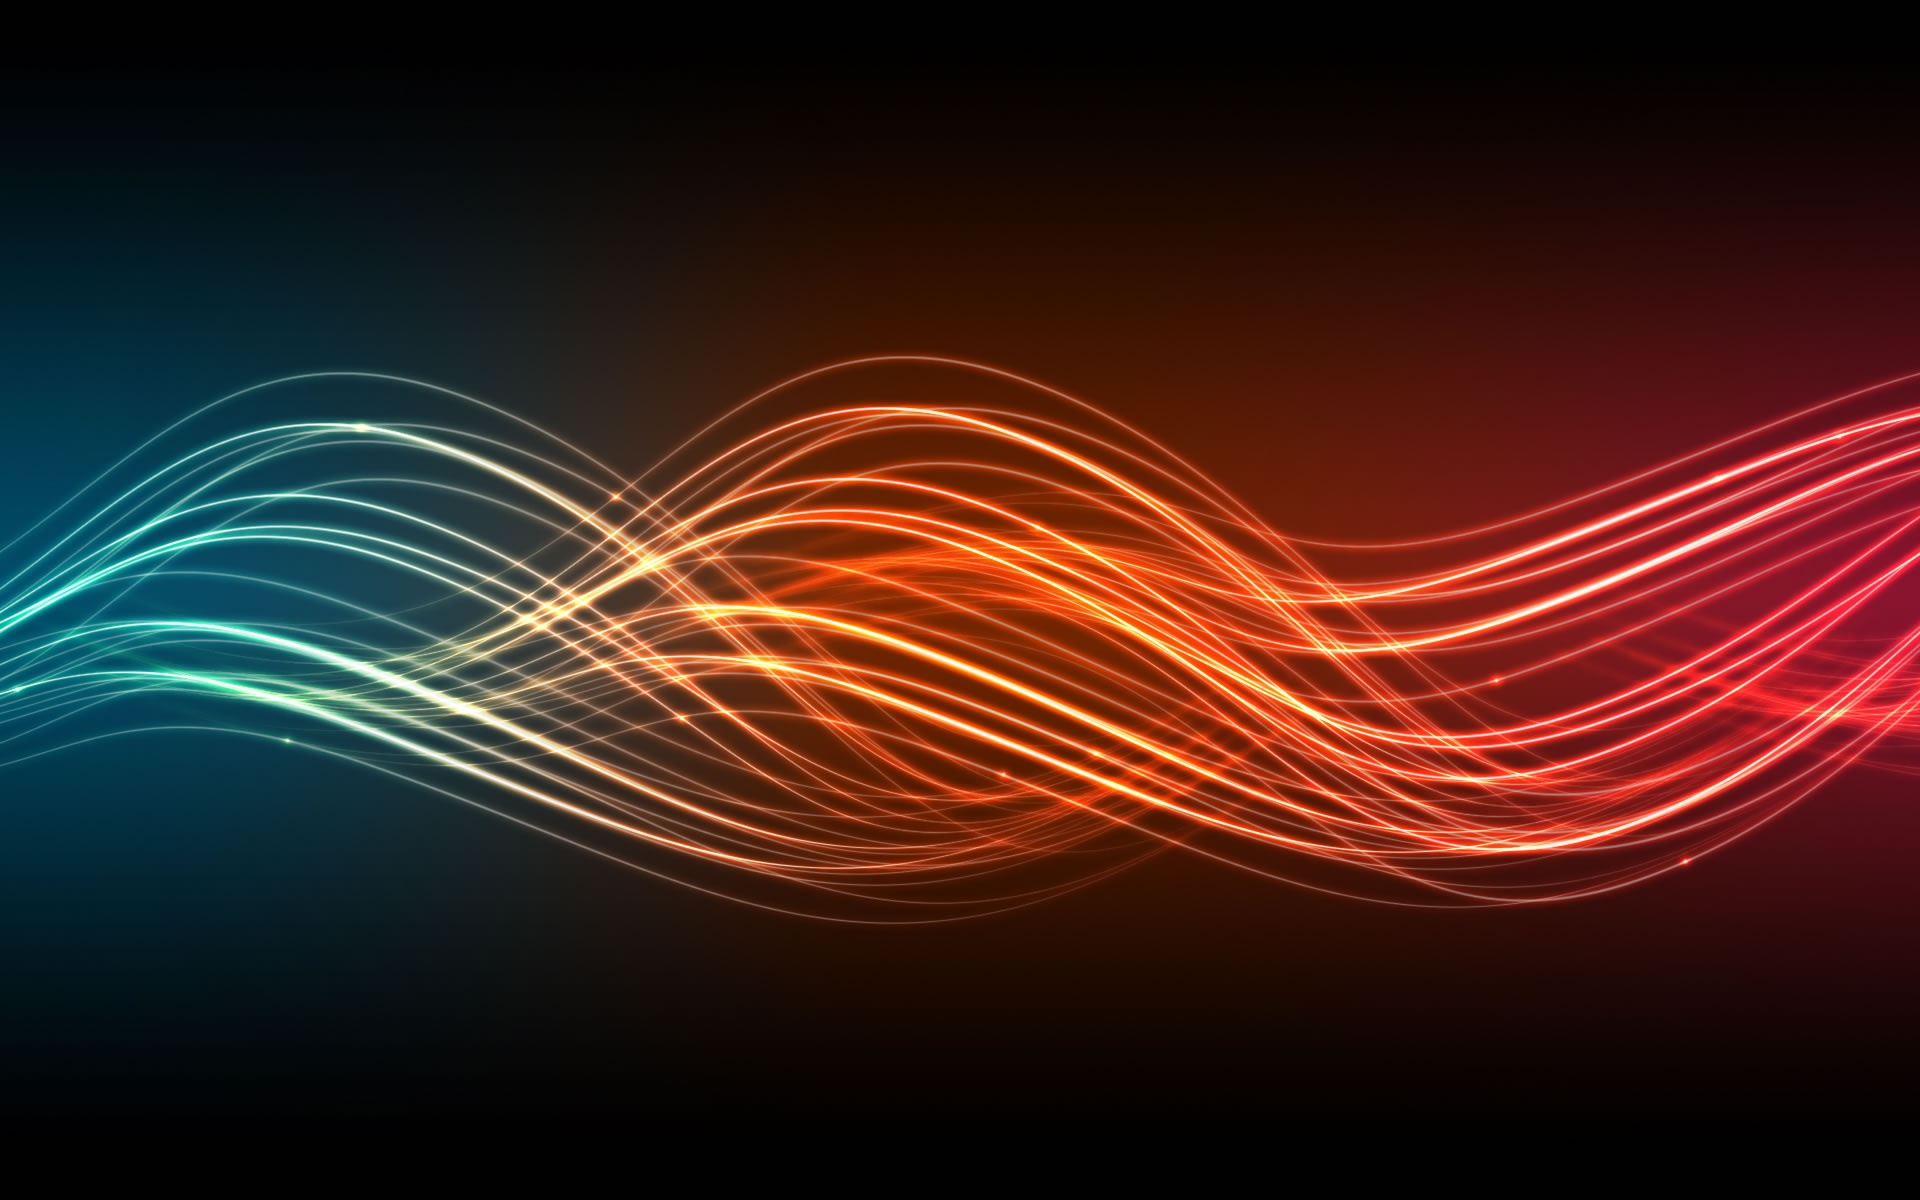 abstract wallpapers hd waves wide